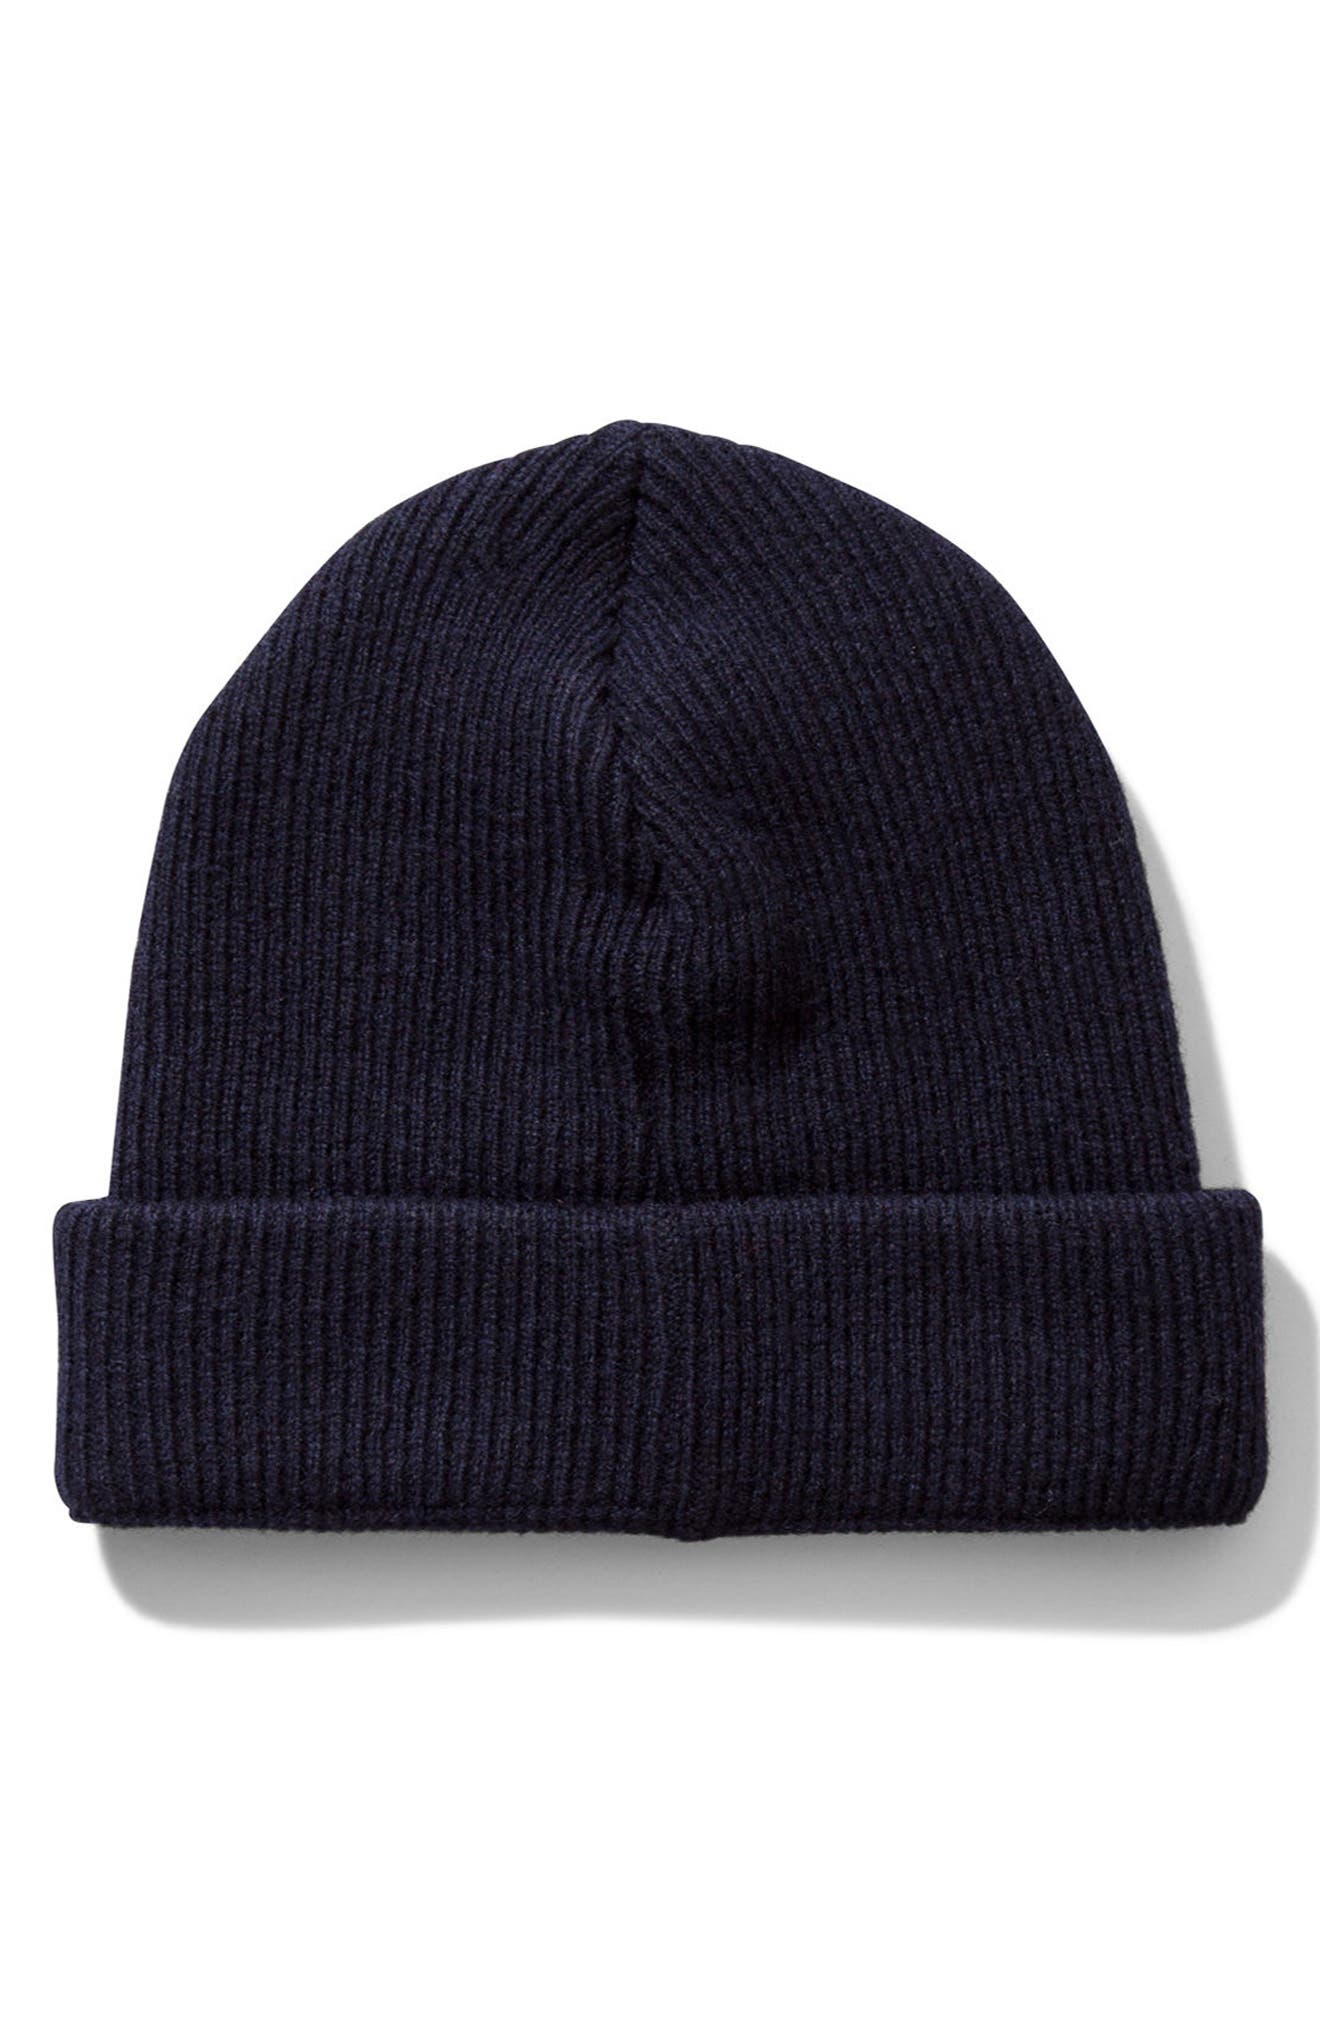 Norse Project Wool Knit Cap,                             Alternate thumbnail 3, color,                             410